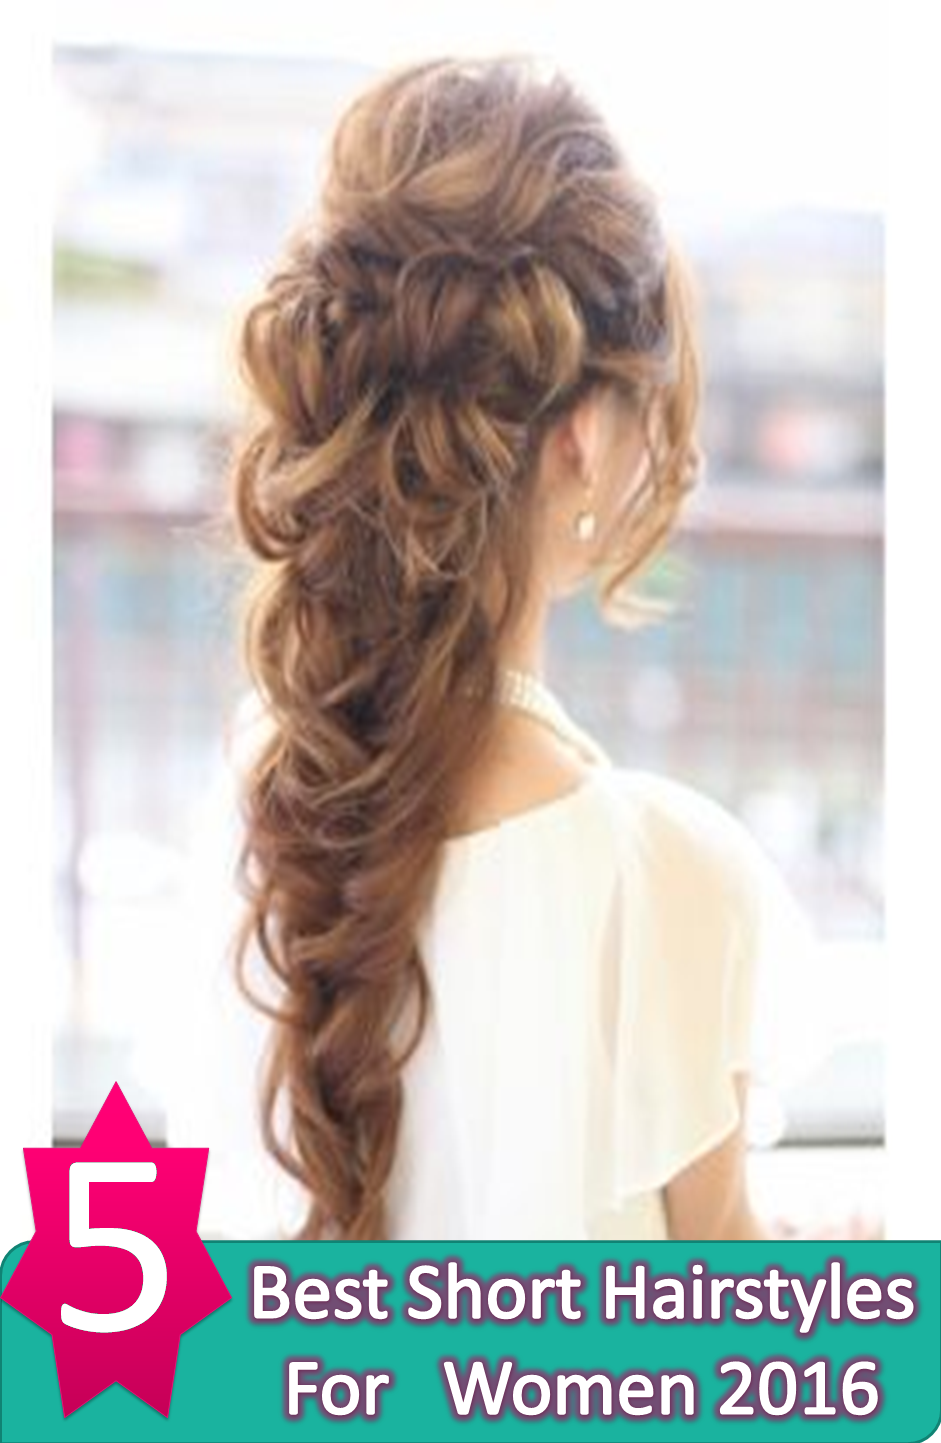 5 Luscious Prom Hairstyles For Short Hair To Make Your Night ...